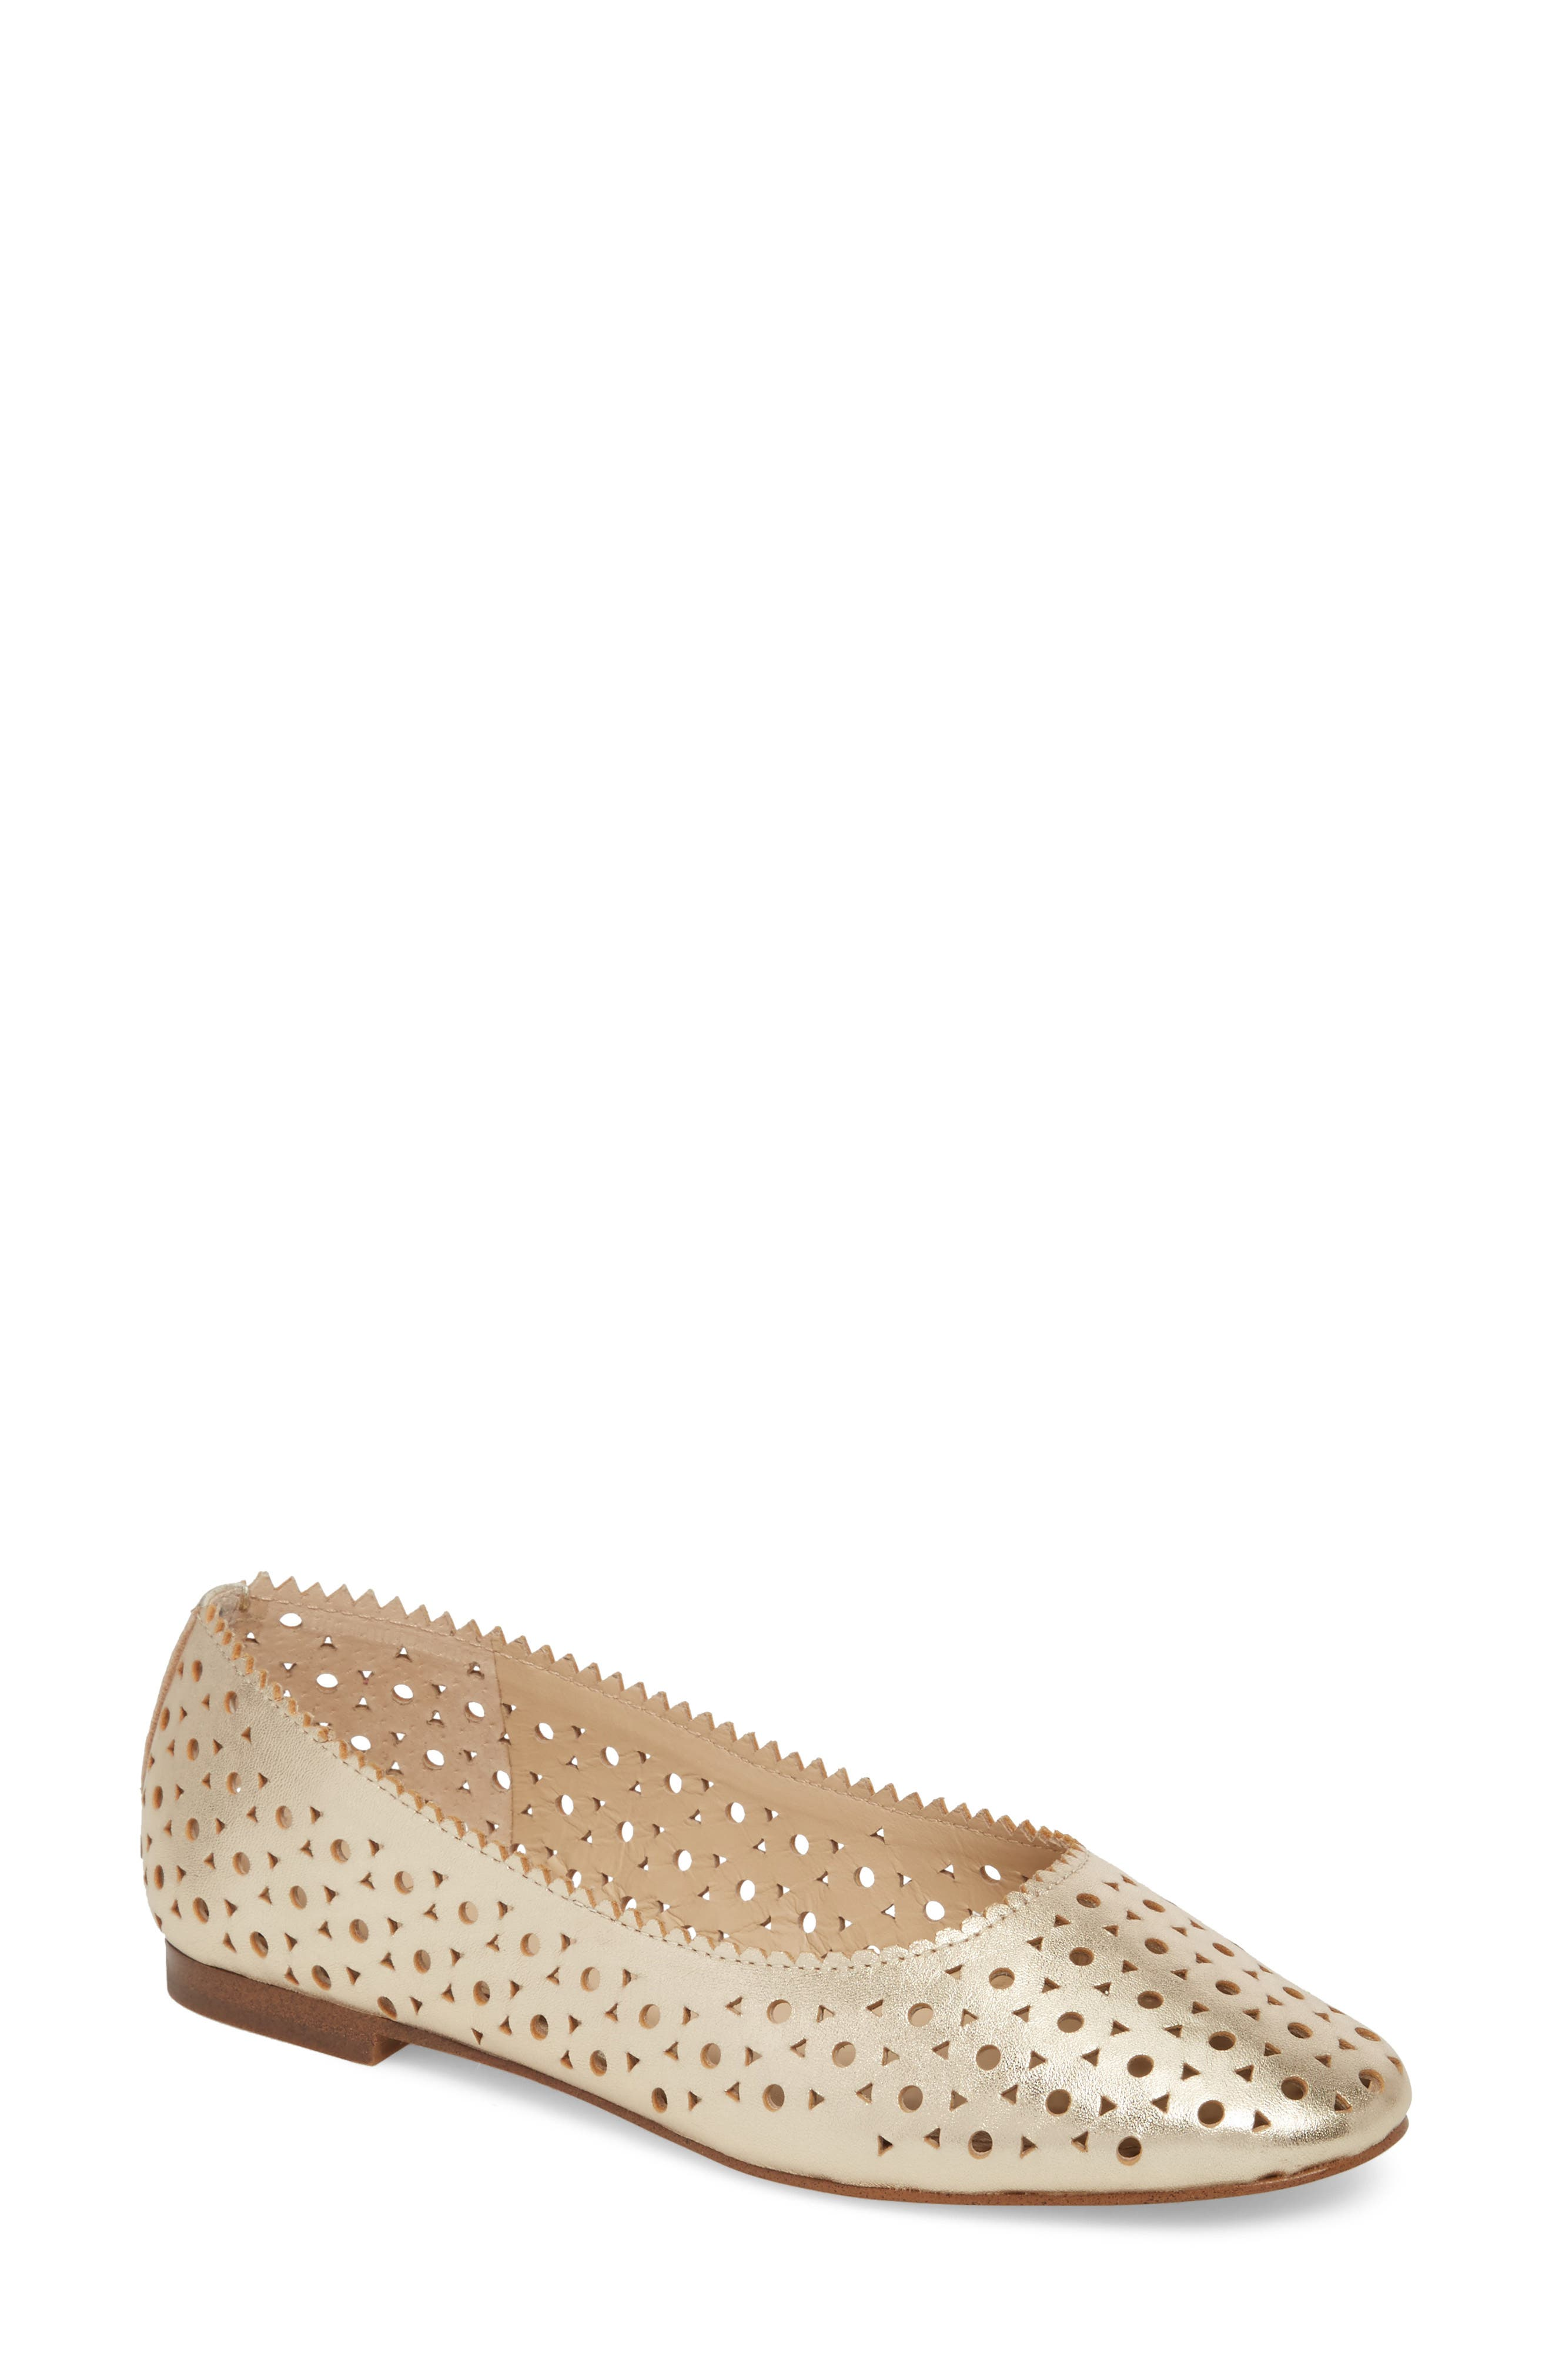 Mandy Flat,                         Main,                         color, Metallic Ivory Leather